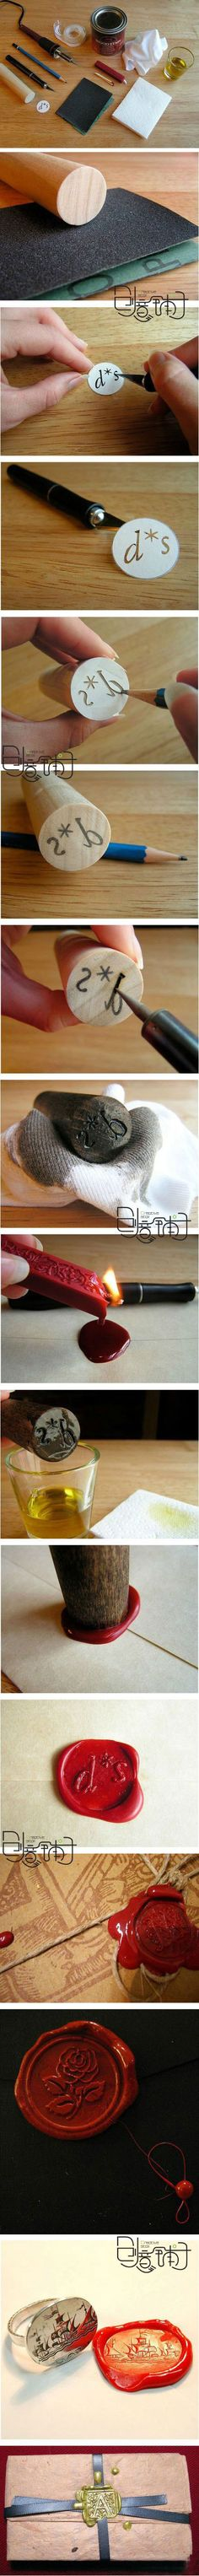 How to make a cool wax seal at home.